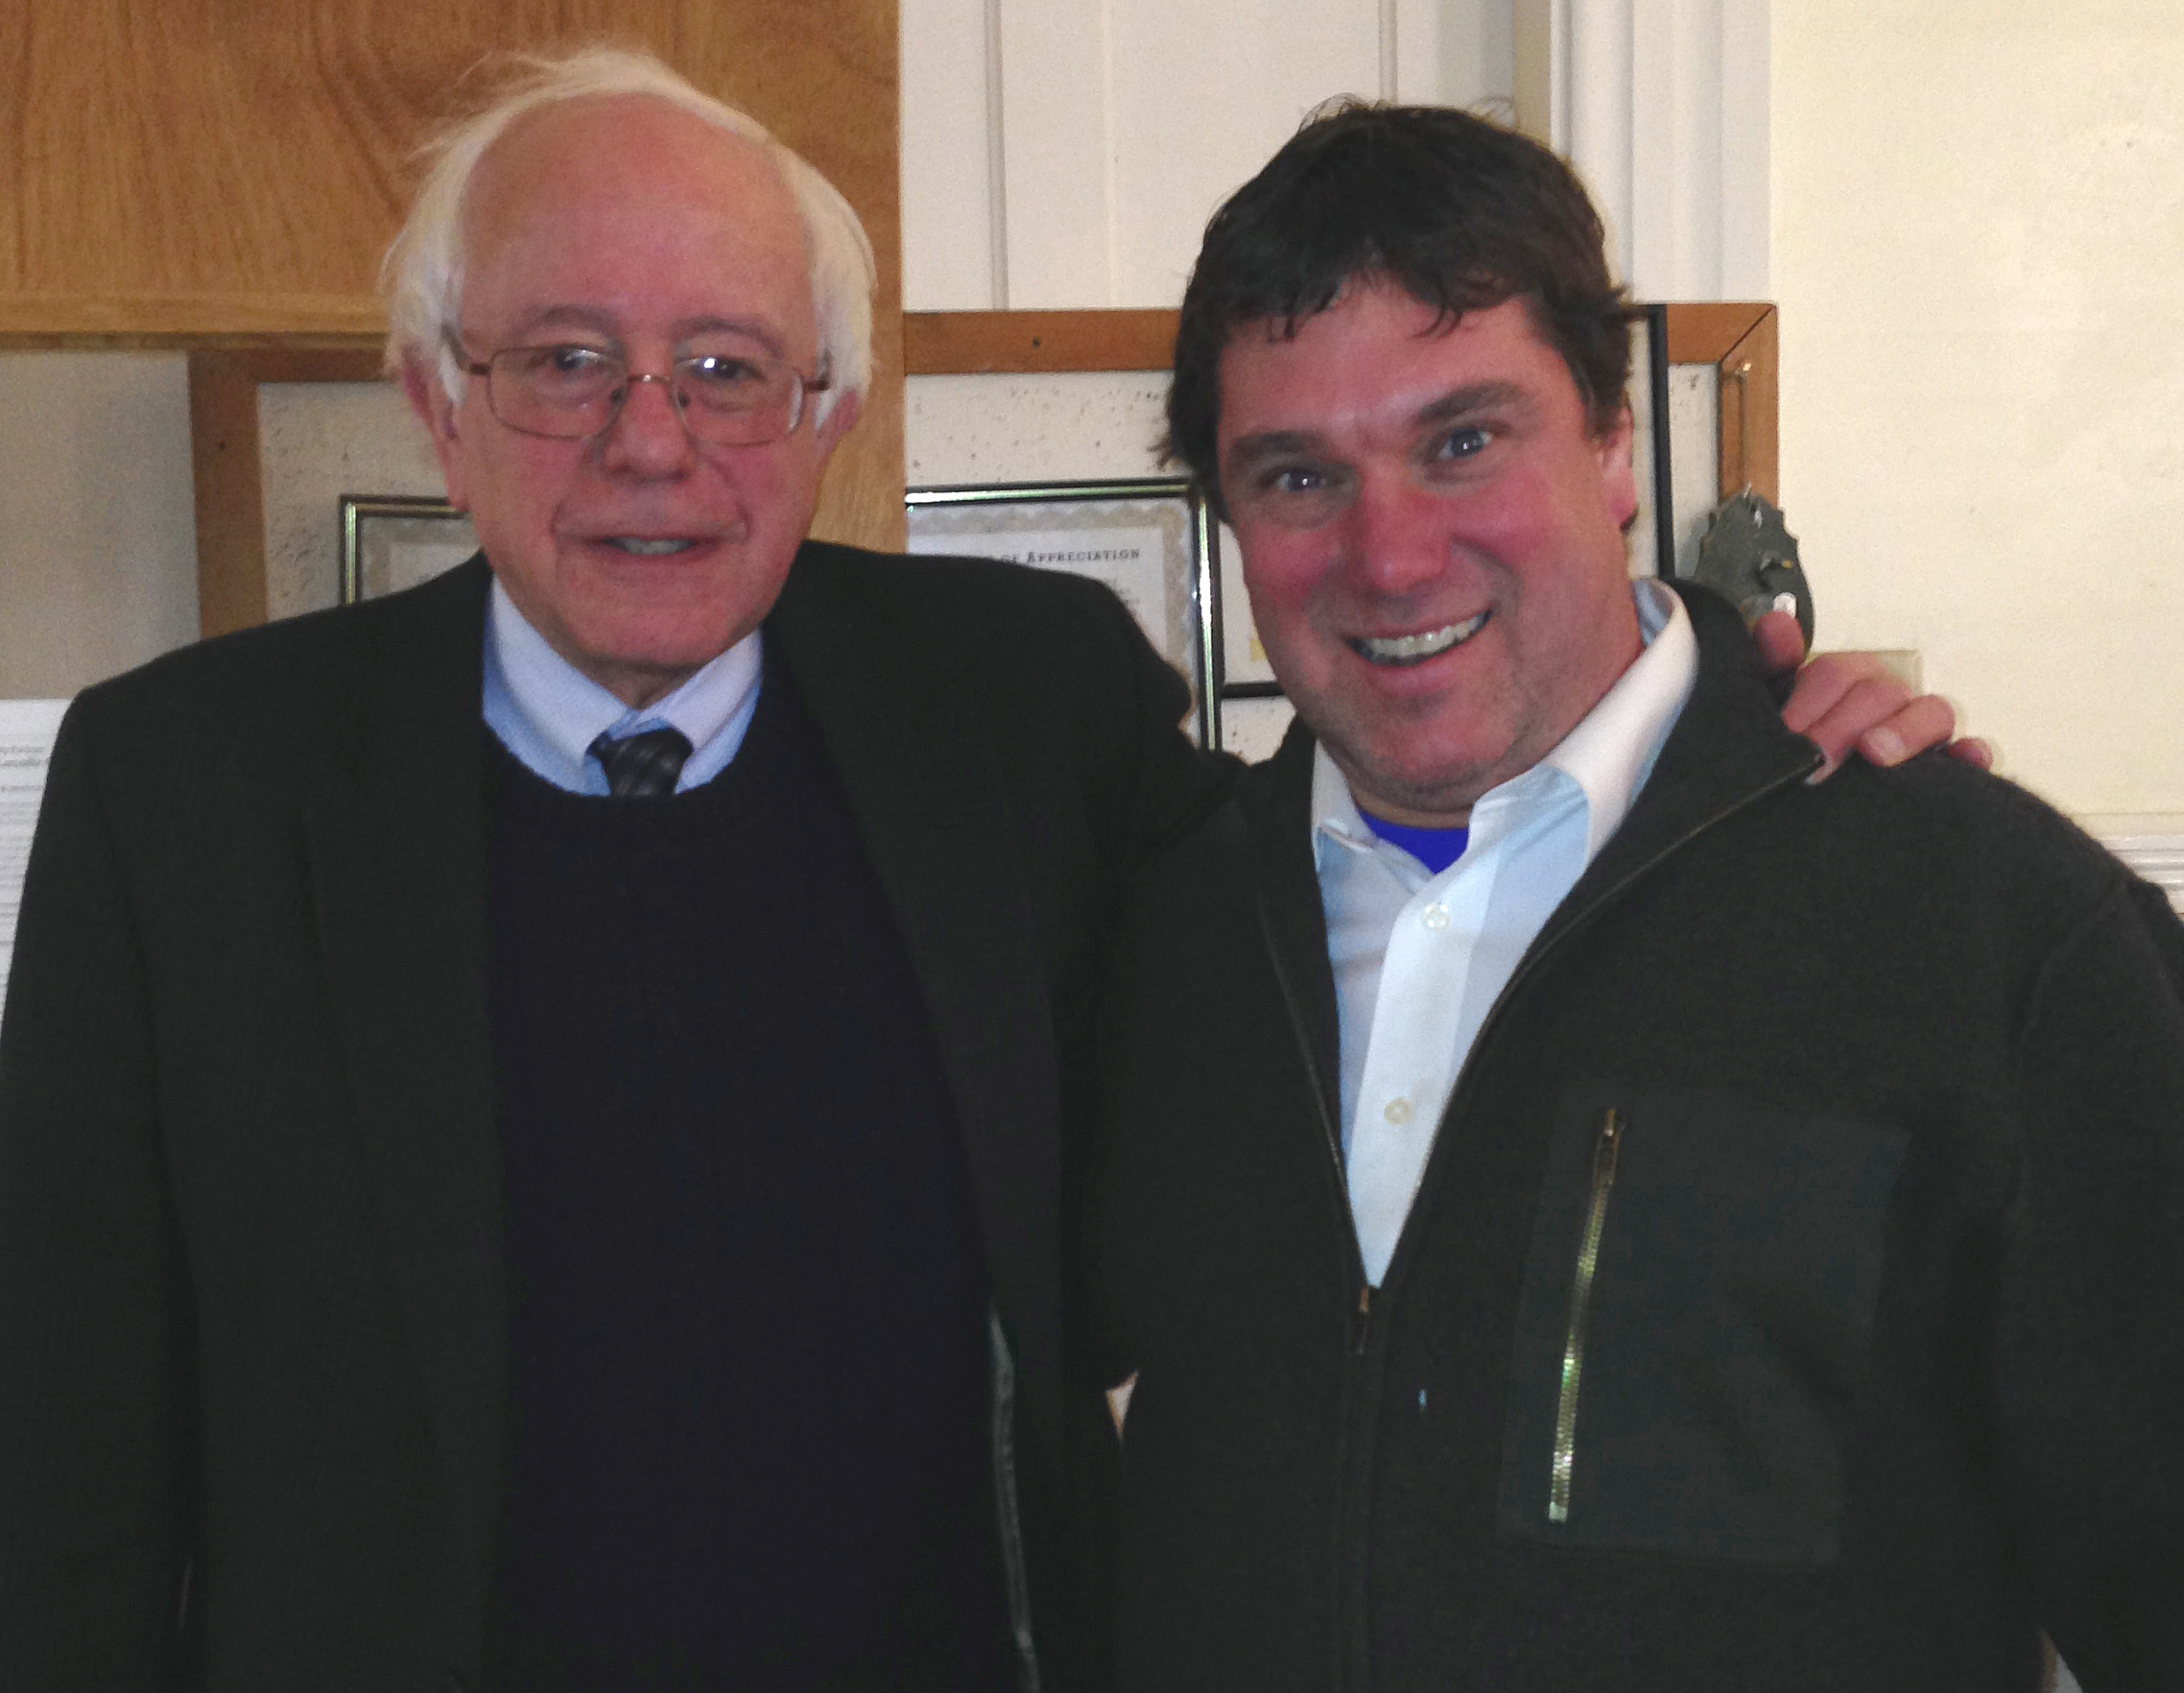 Bernie and Dan